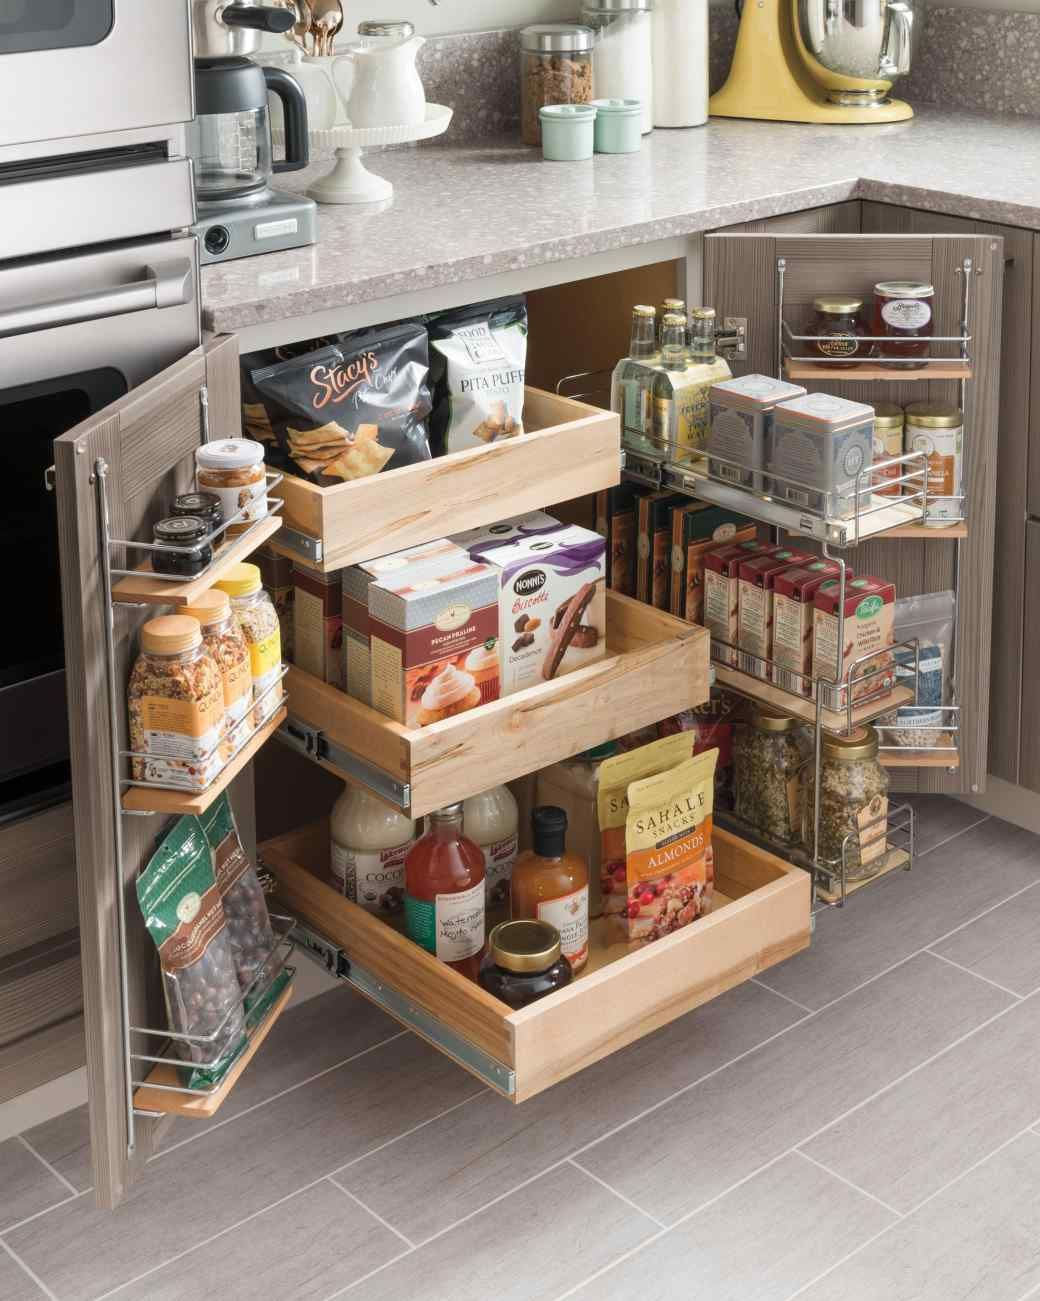 say goodbye to kitchen storage problems when you renovate your kitchen